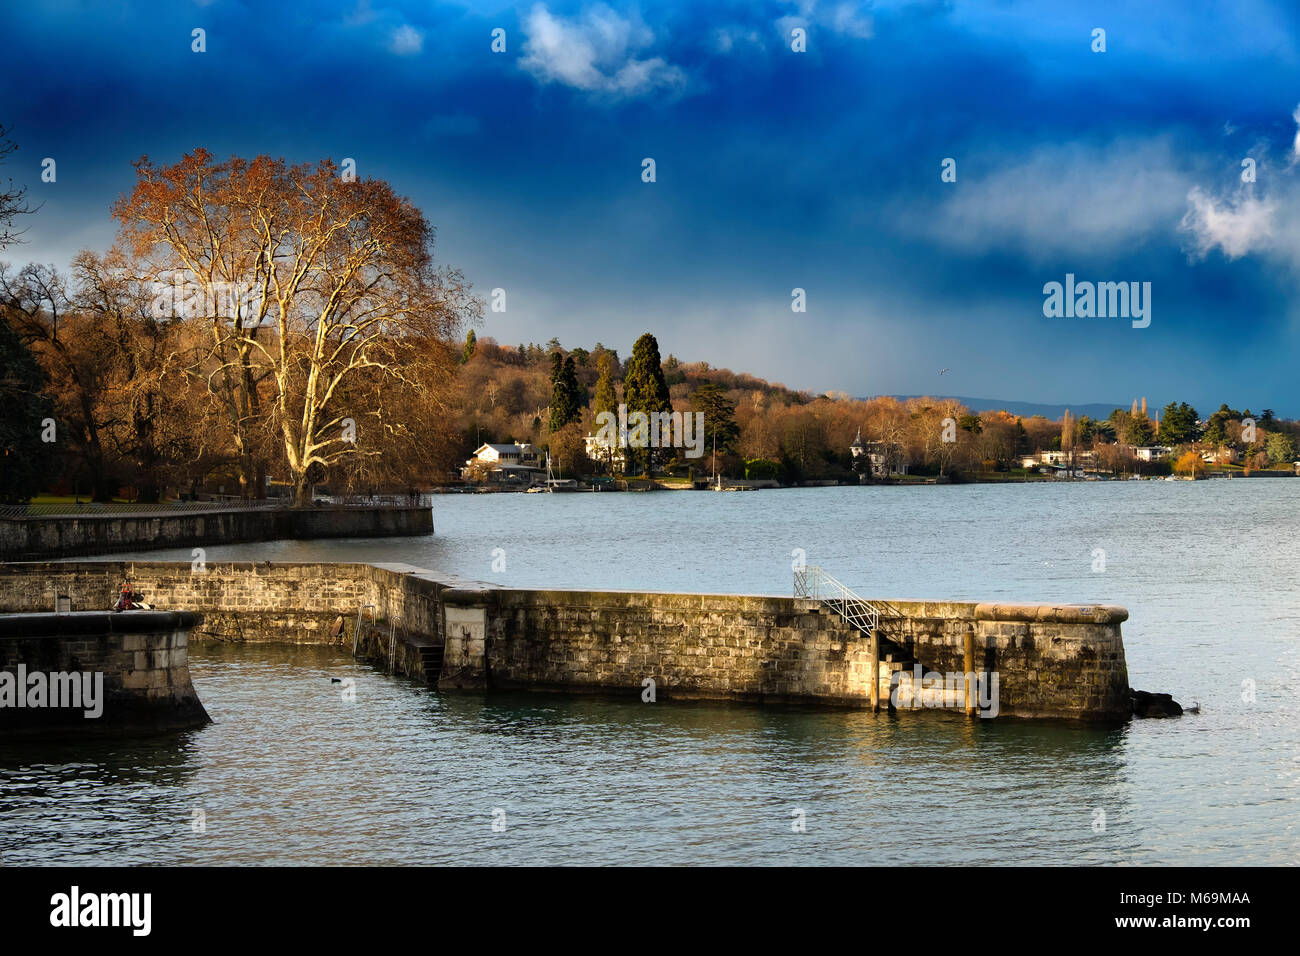 Leman Lake. Old town, historic center. Genève Suisse. Geneva. Switzerland Europe Stock Photo